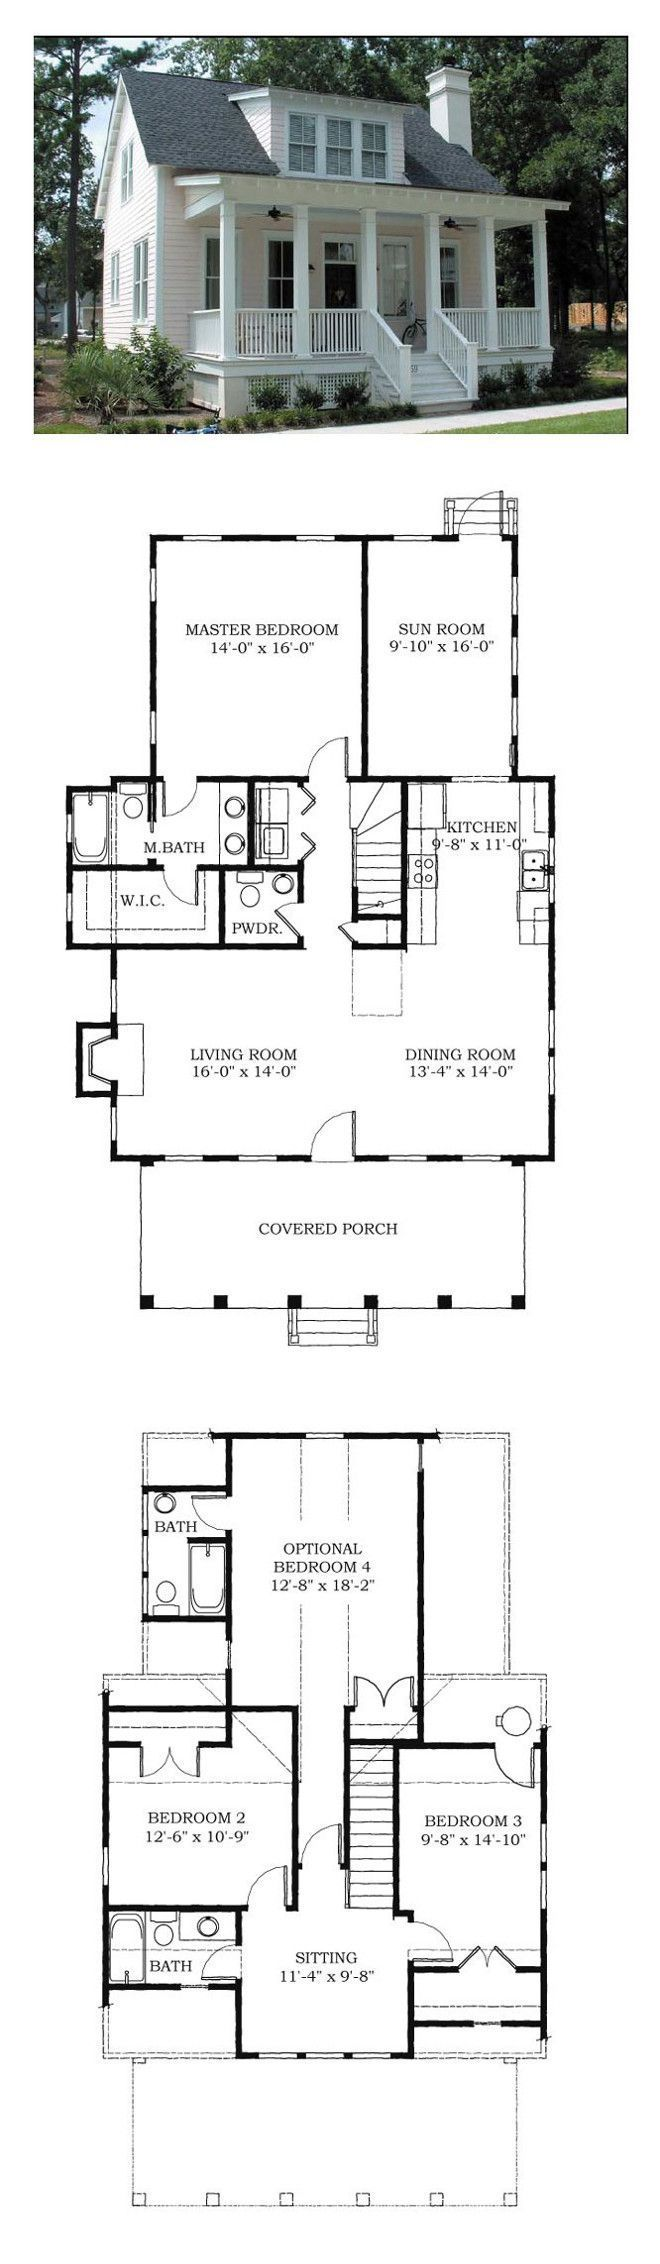 Small House Plans With Loft Bedroom 17 Best Ideas About Cabin Floor Plans On Pinterest Small Home